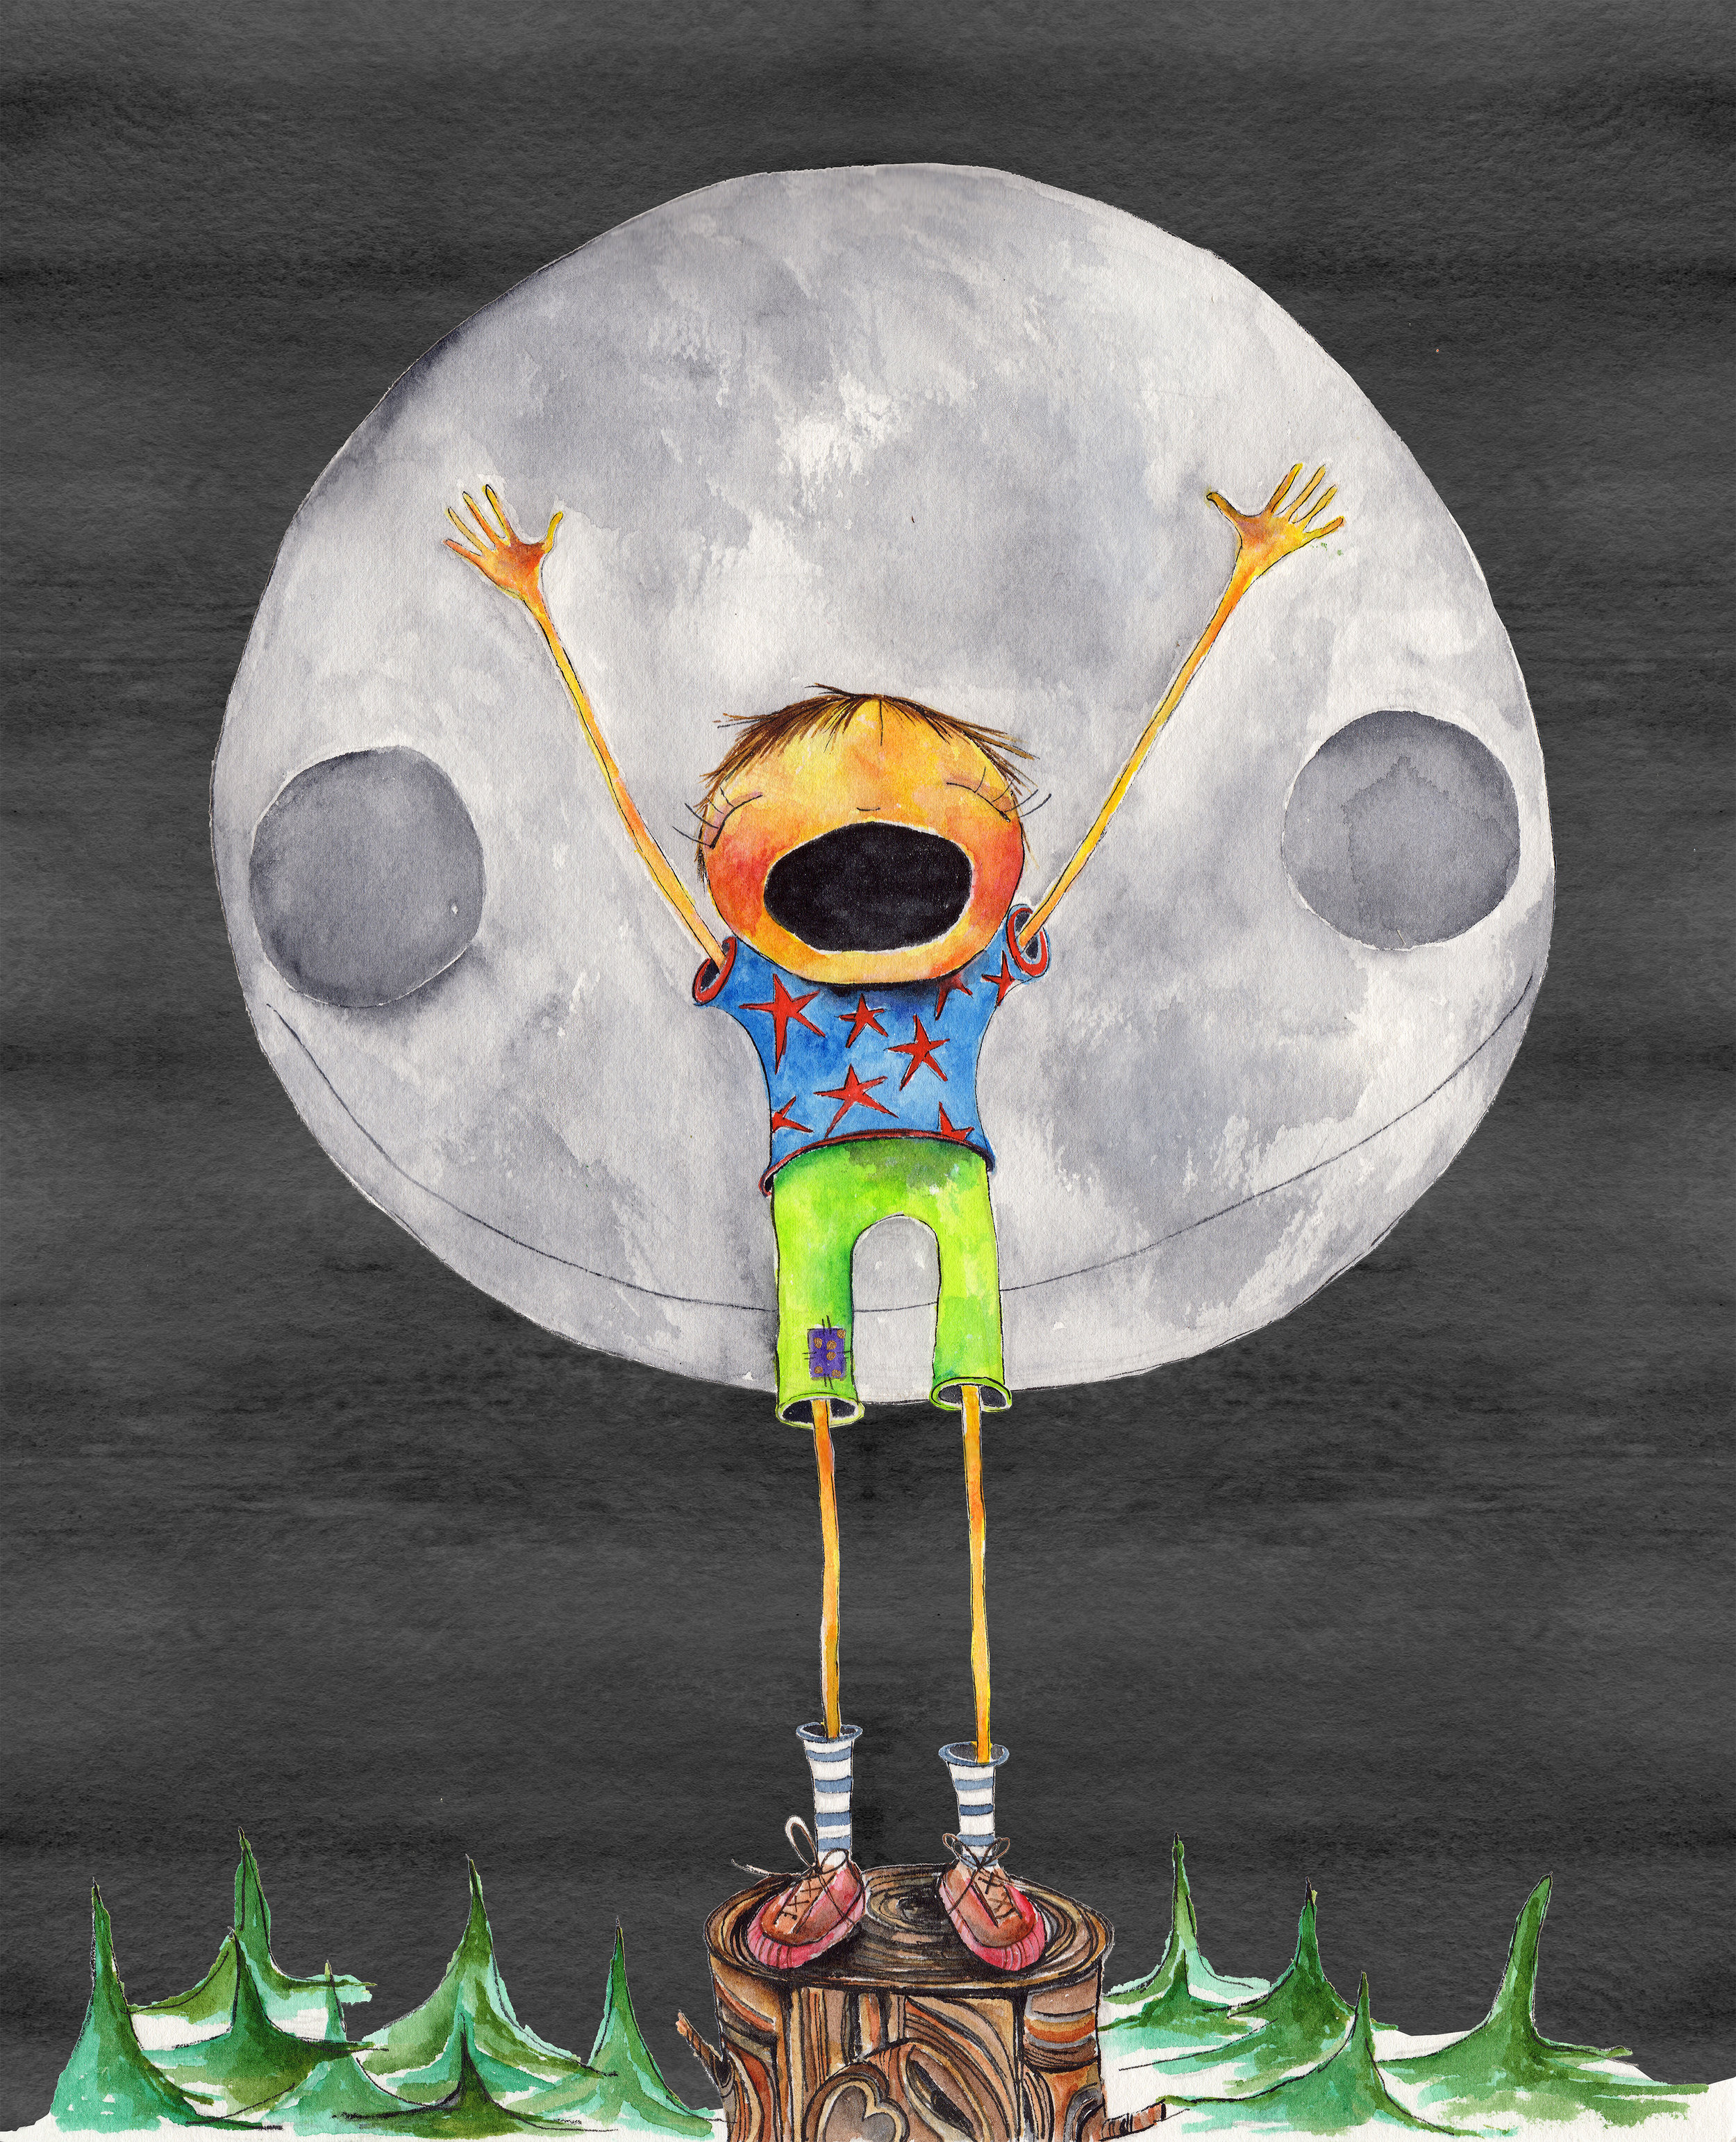 """Image from """"Logan and the Miracle"""" a book in the Gnat & Corky children's series.  www.nataliesorrentino.com  (@gnatandcorky)"""